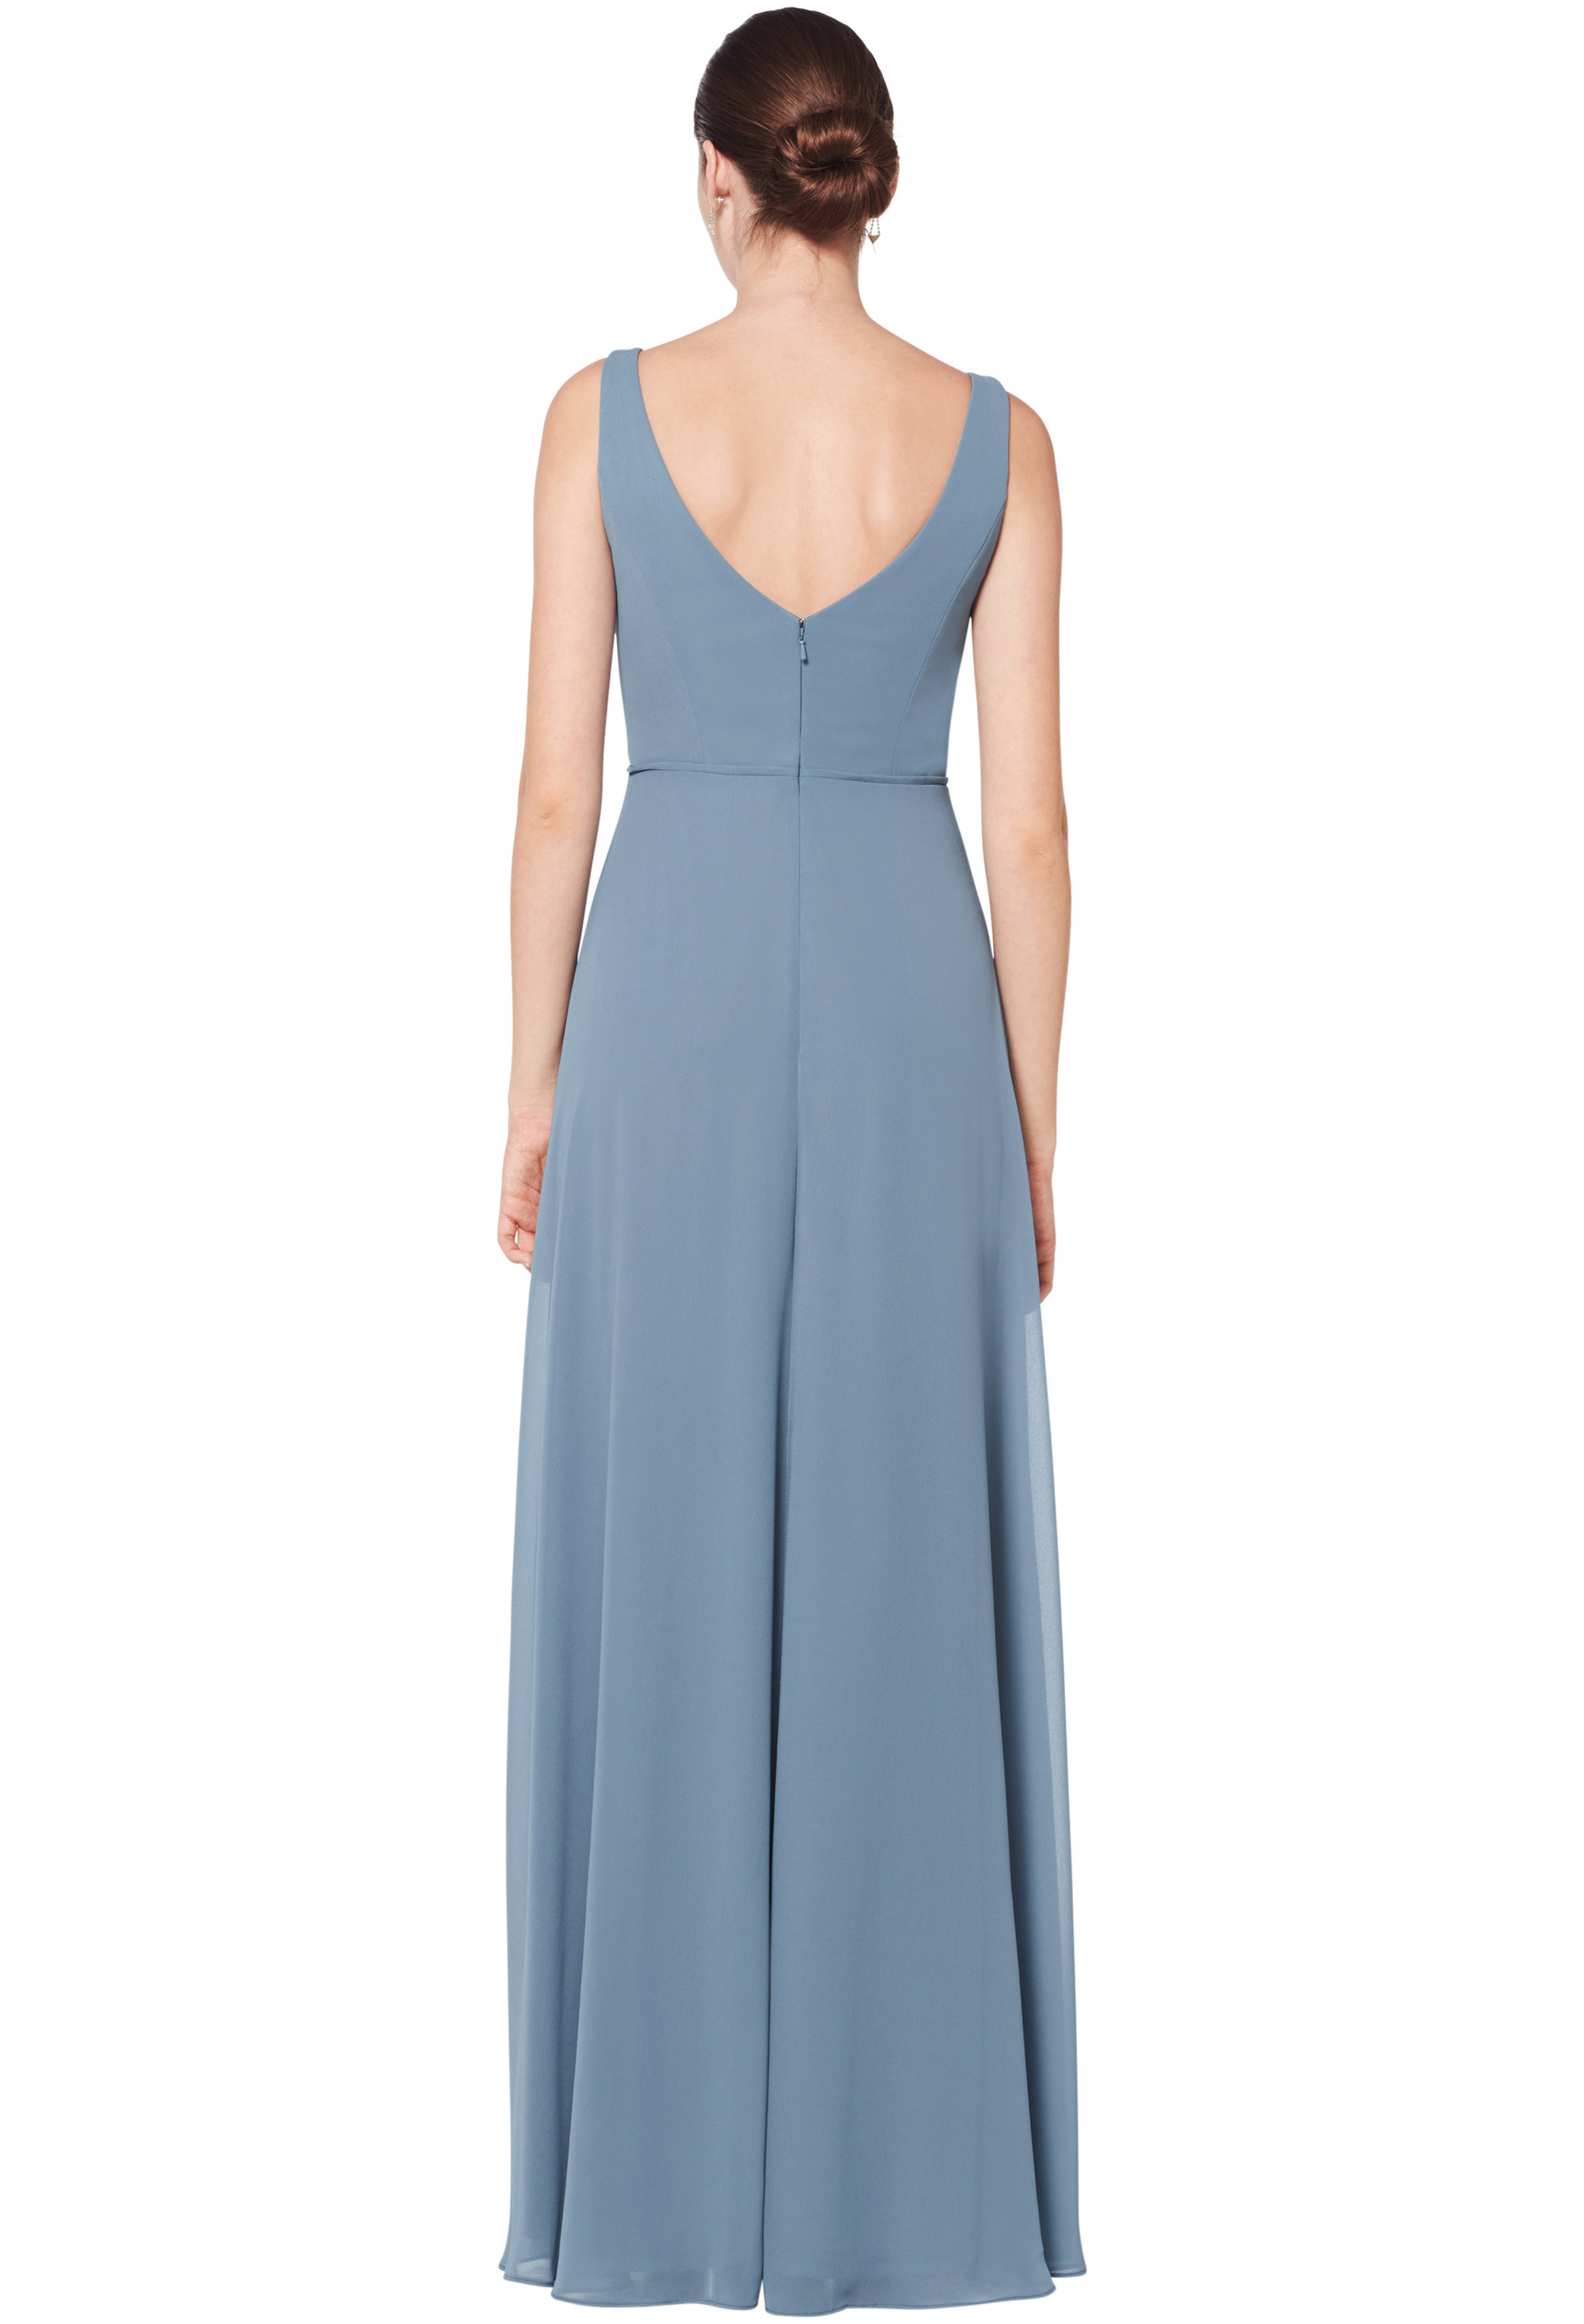 Bill Levkoff HORIZON Chiffon Sleeveless Natural Waist gown, $178.00 Back